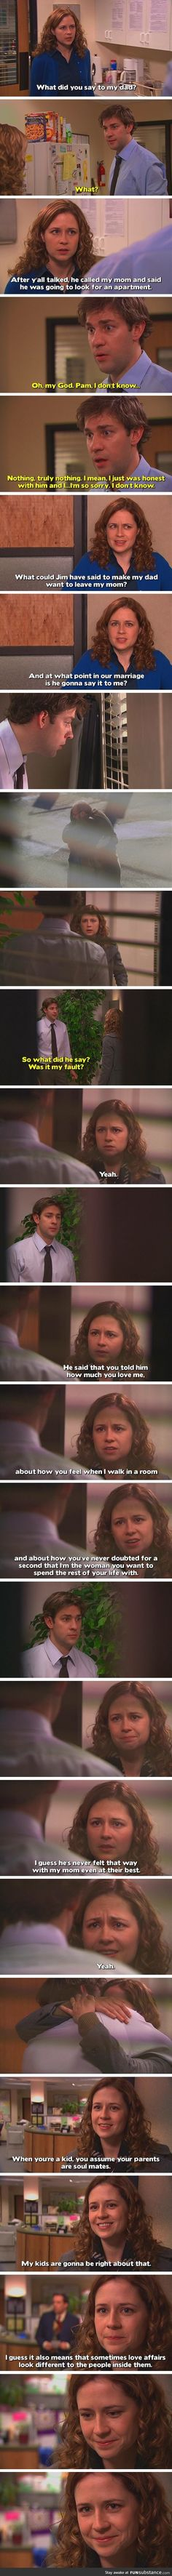 Best ideas for funny relationship goals the office Office Quotes, Office Memes, Funny Relationship Quotes, Relationship Goals, Relationships, Dundee, Thats 70 Show, The Office Show, Funny Memes